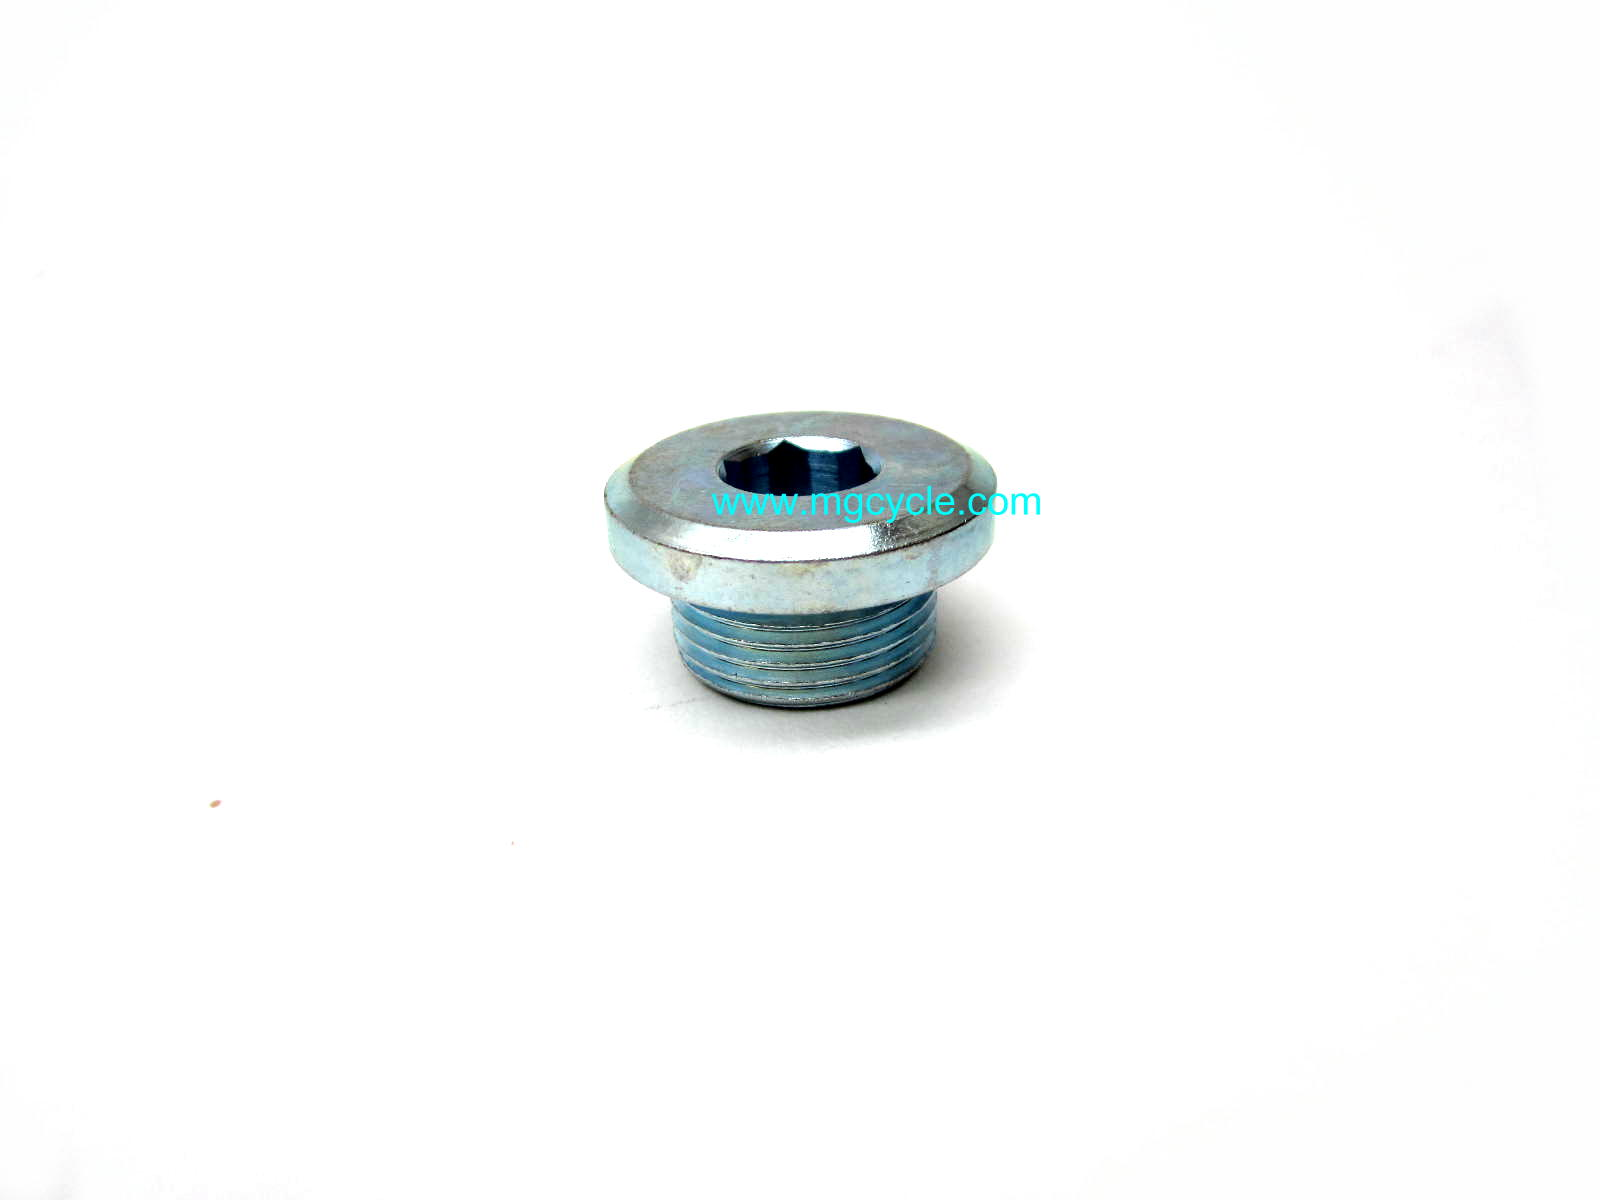 access plug, trans-rear drive fill plug, allen head